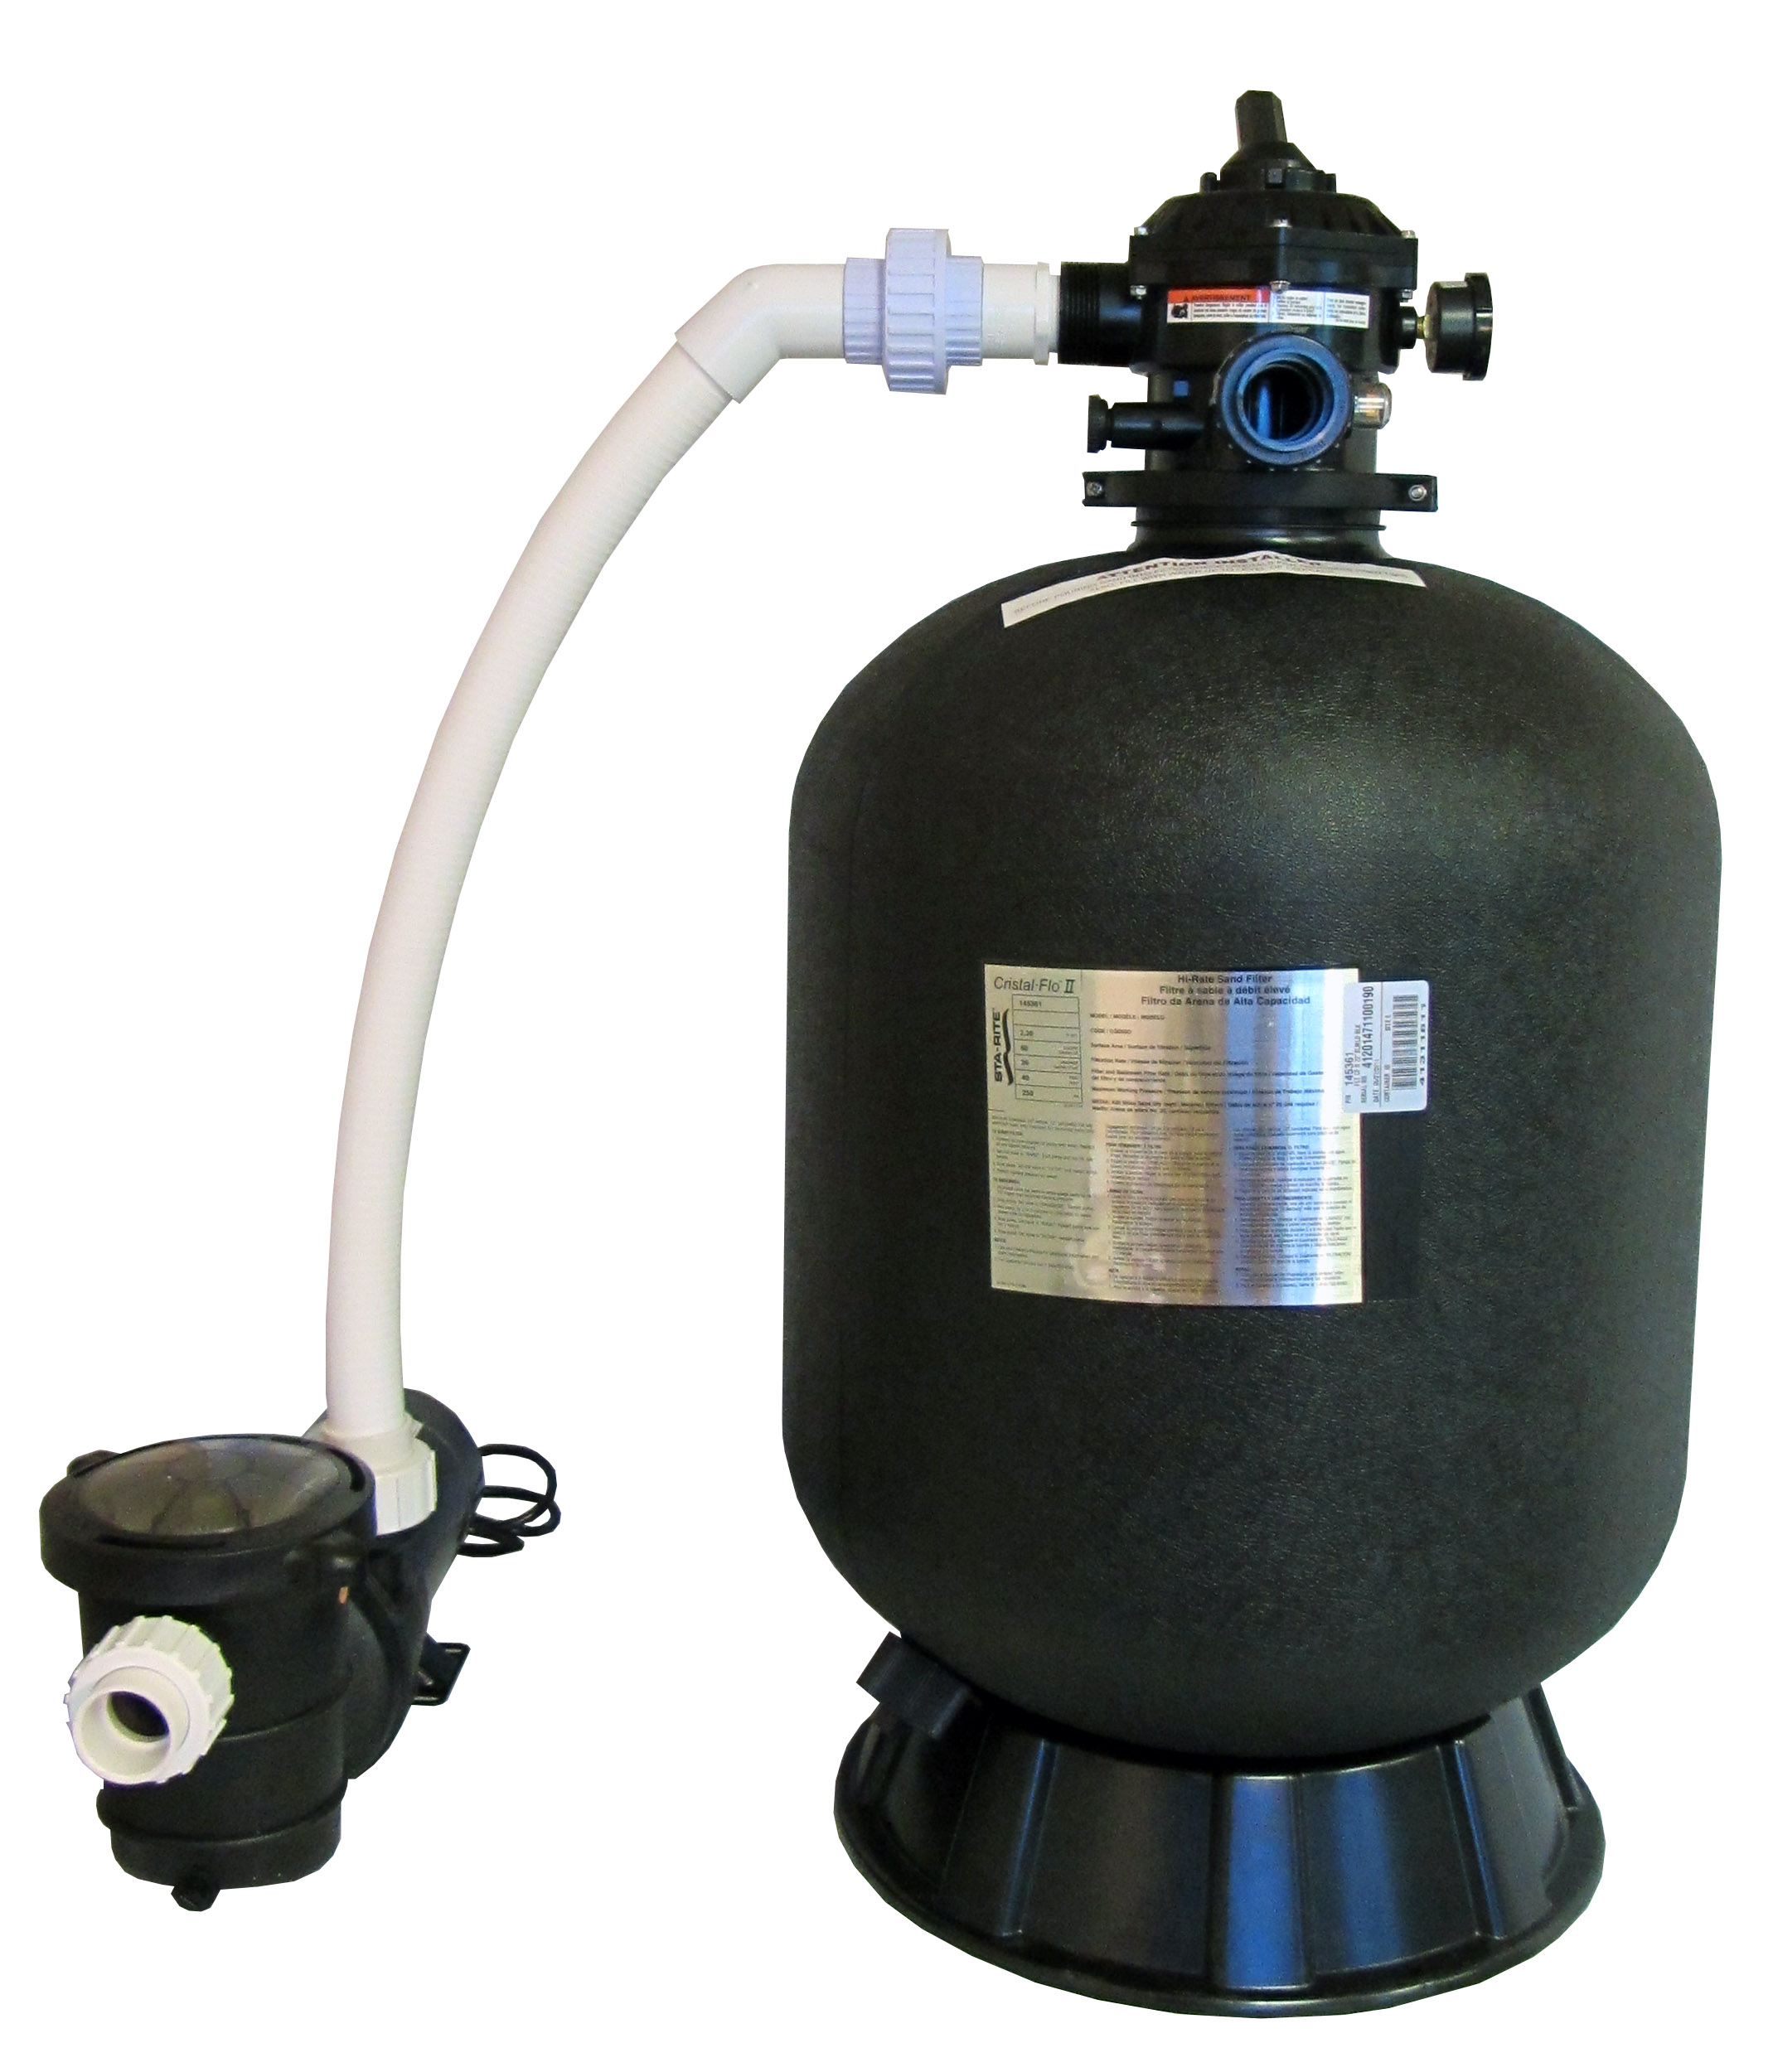 Sta rite above ground swimming pool sand filter system for Pond sand filter system